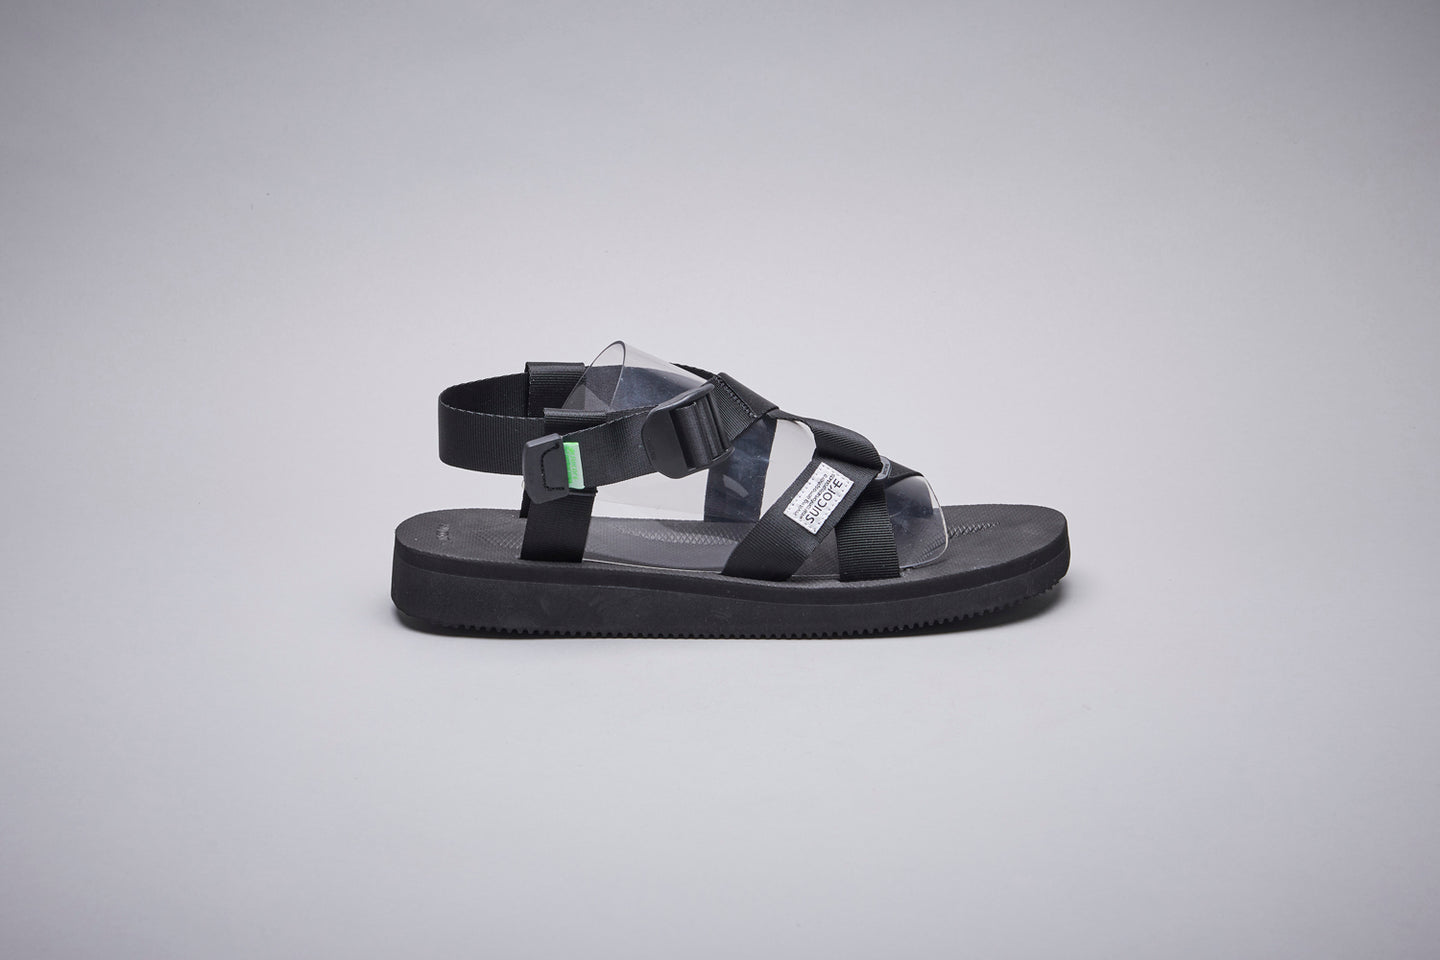 SUICOKE-Sandals-CHIN2-Cab - Black-OG-023-2CAB Official Webstore Spring 2021